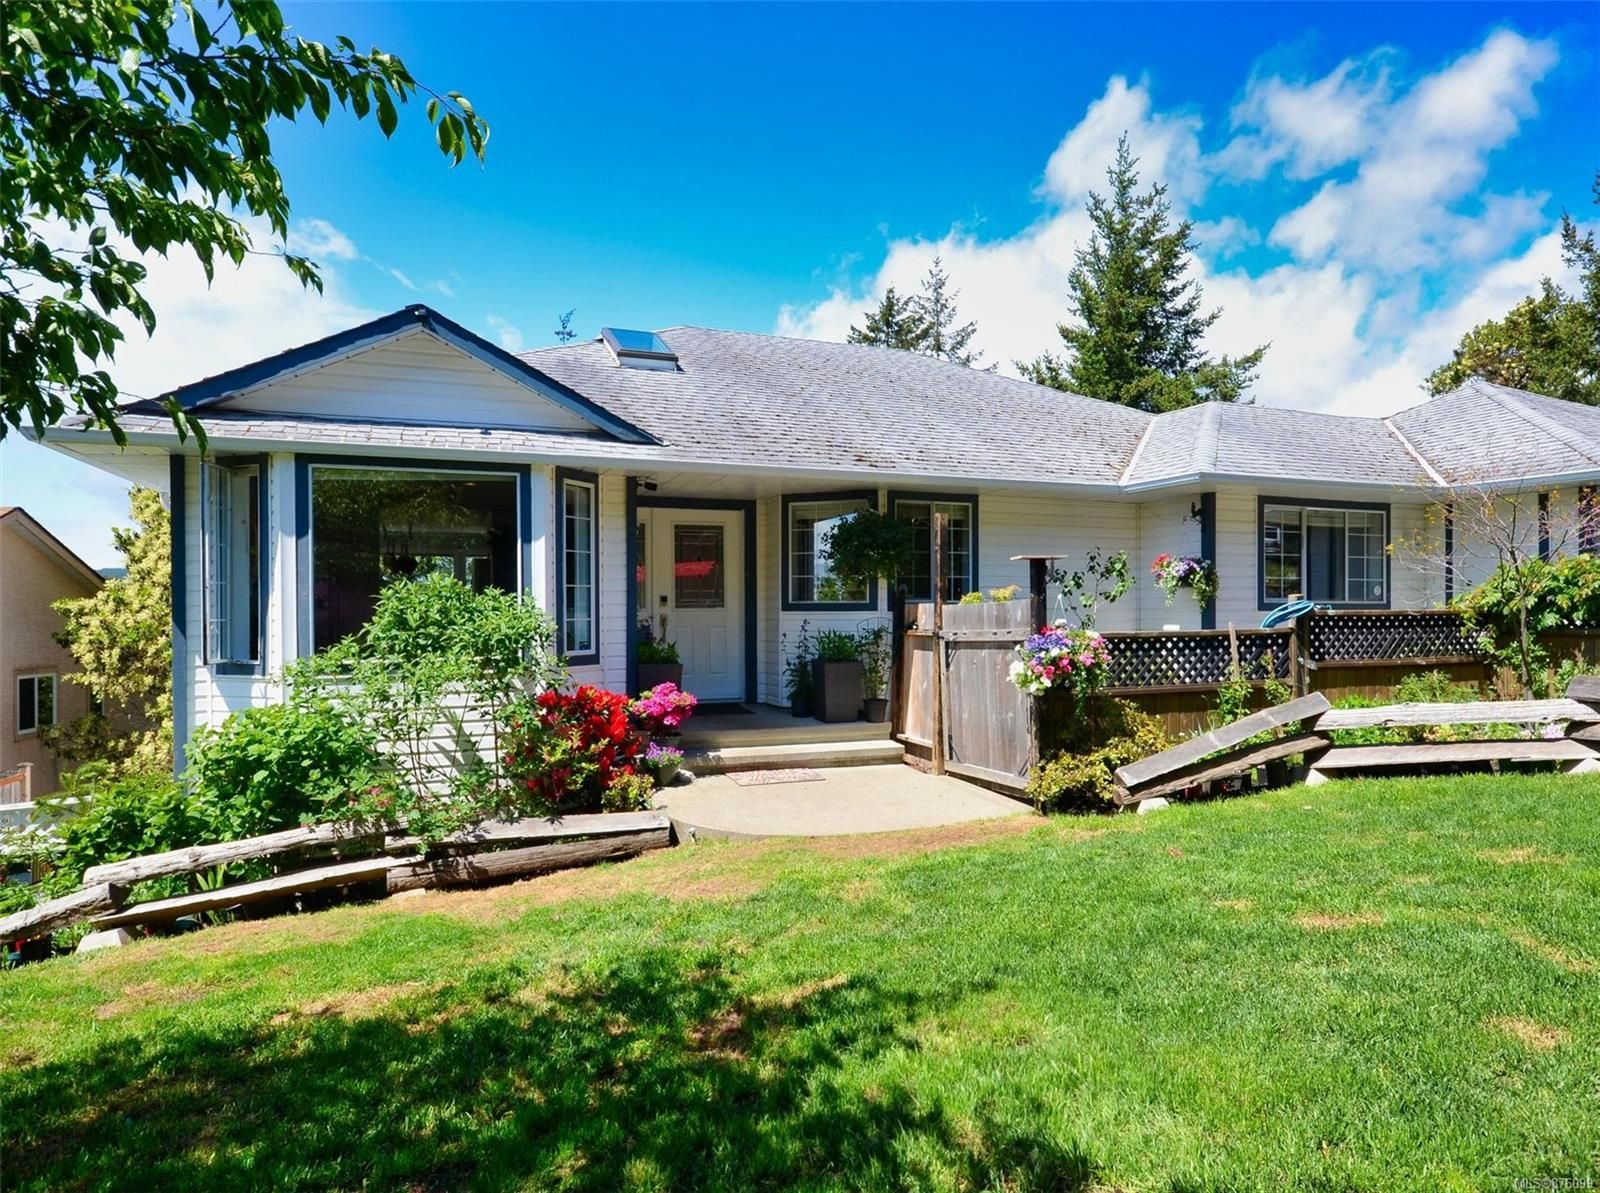 Main Photo: 3492 Sunheights Dr in : La Walfred House for sale (Langford)  : MLS®# 876099